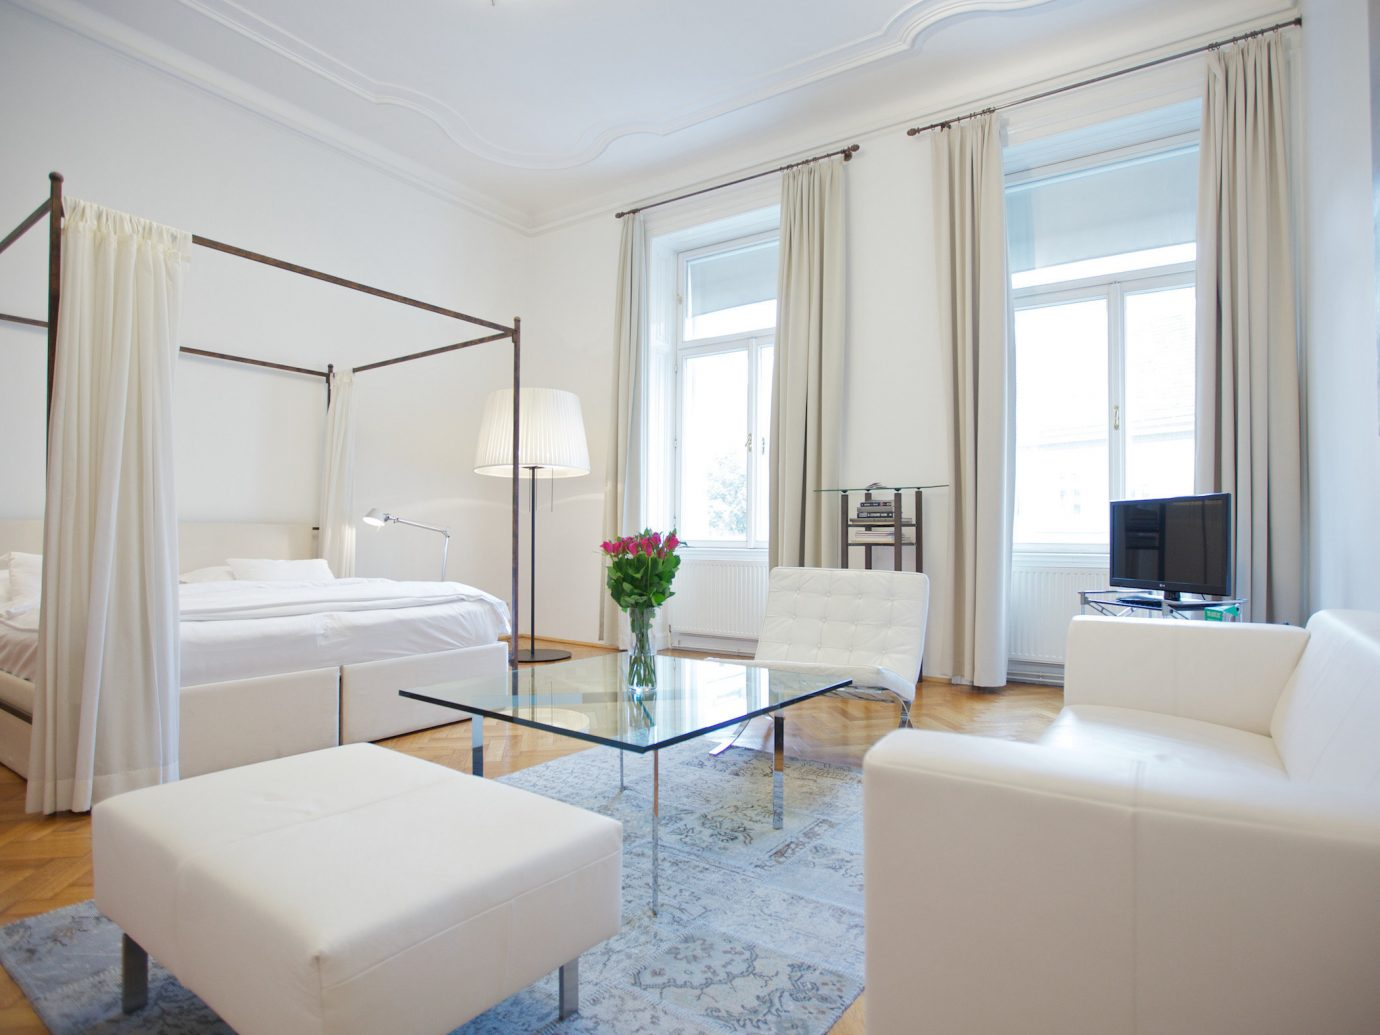 Austria europe Hotels Vienna indoor window floor wall room interior design real estate Suite living room home apartment ceiling white daylighting furniture Bedroom estate interior designer penthouse apartment house